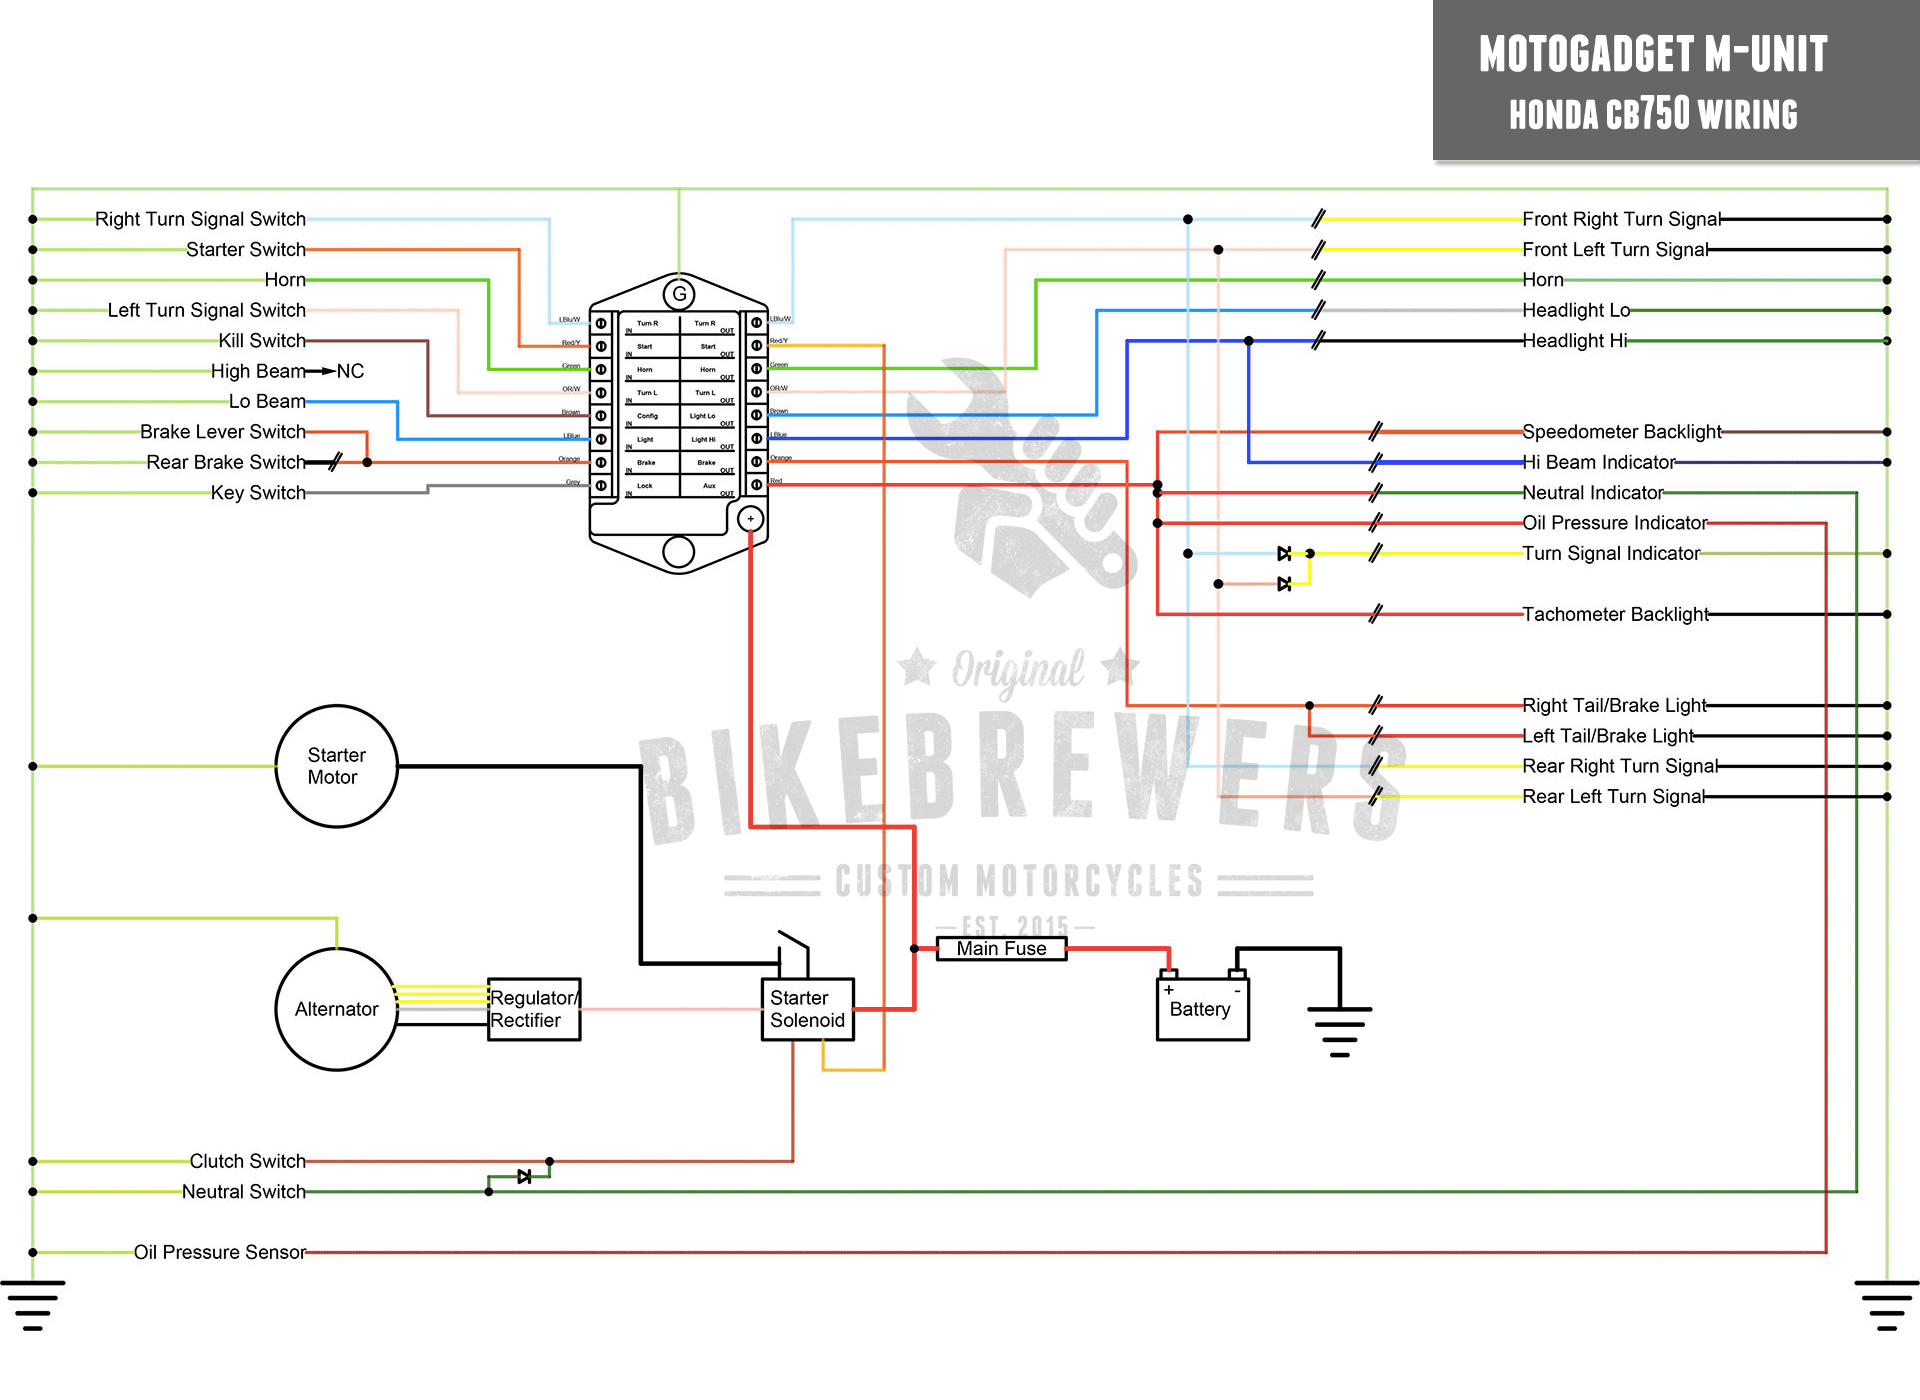 hight resolution of bmw r65 wiring diagram wiring diagrambmw r65 motorcycle wiring diagrams wiring librarymotogadget wiring honda cb750